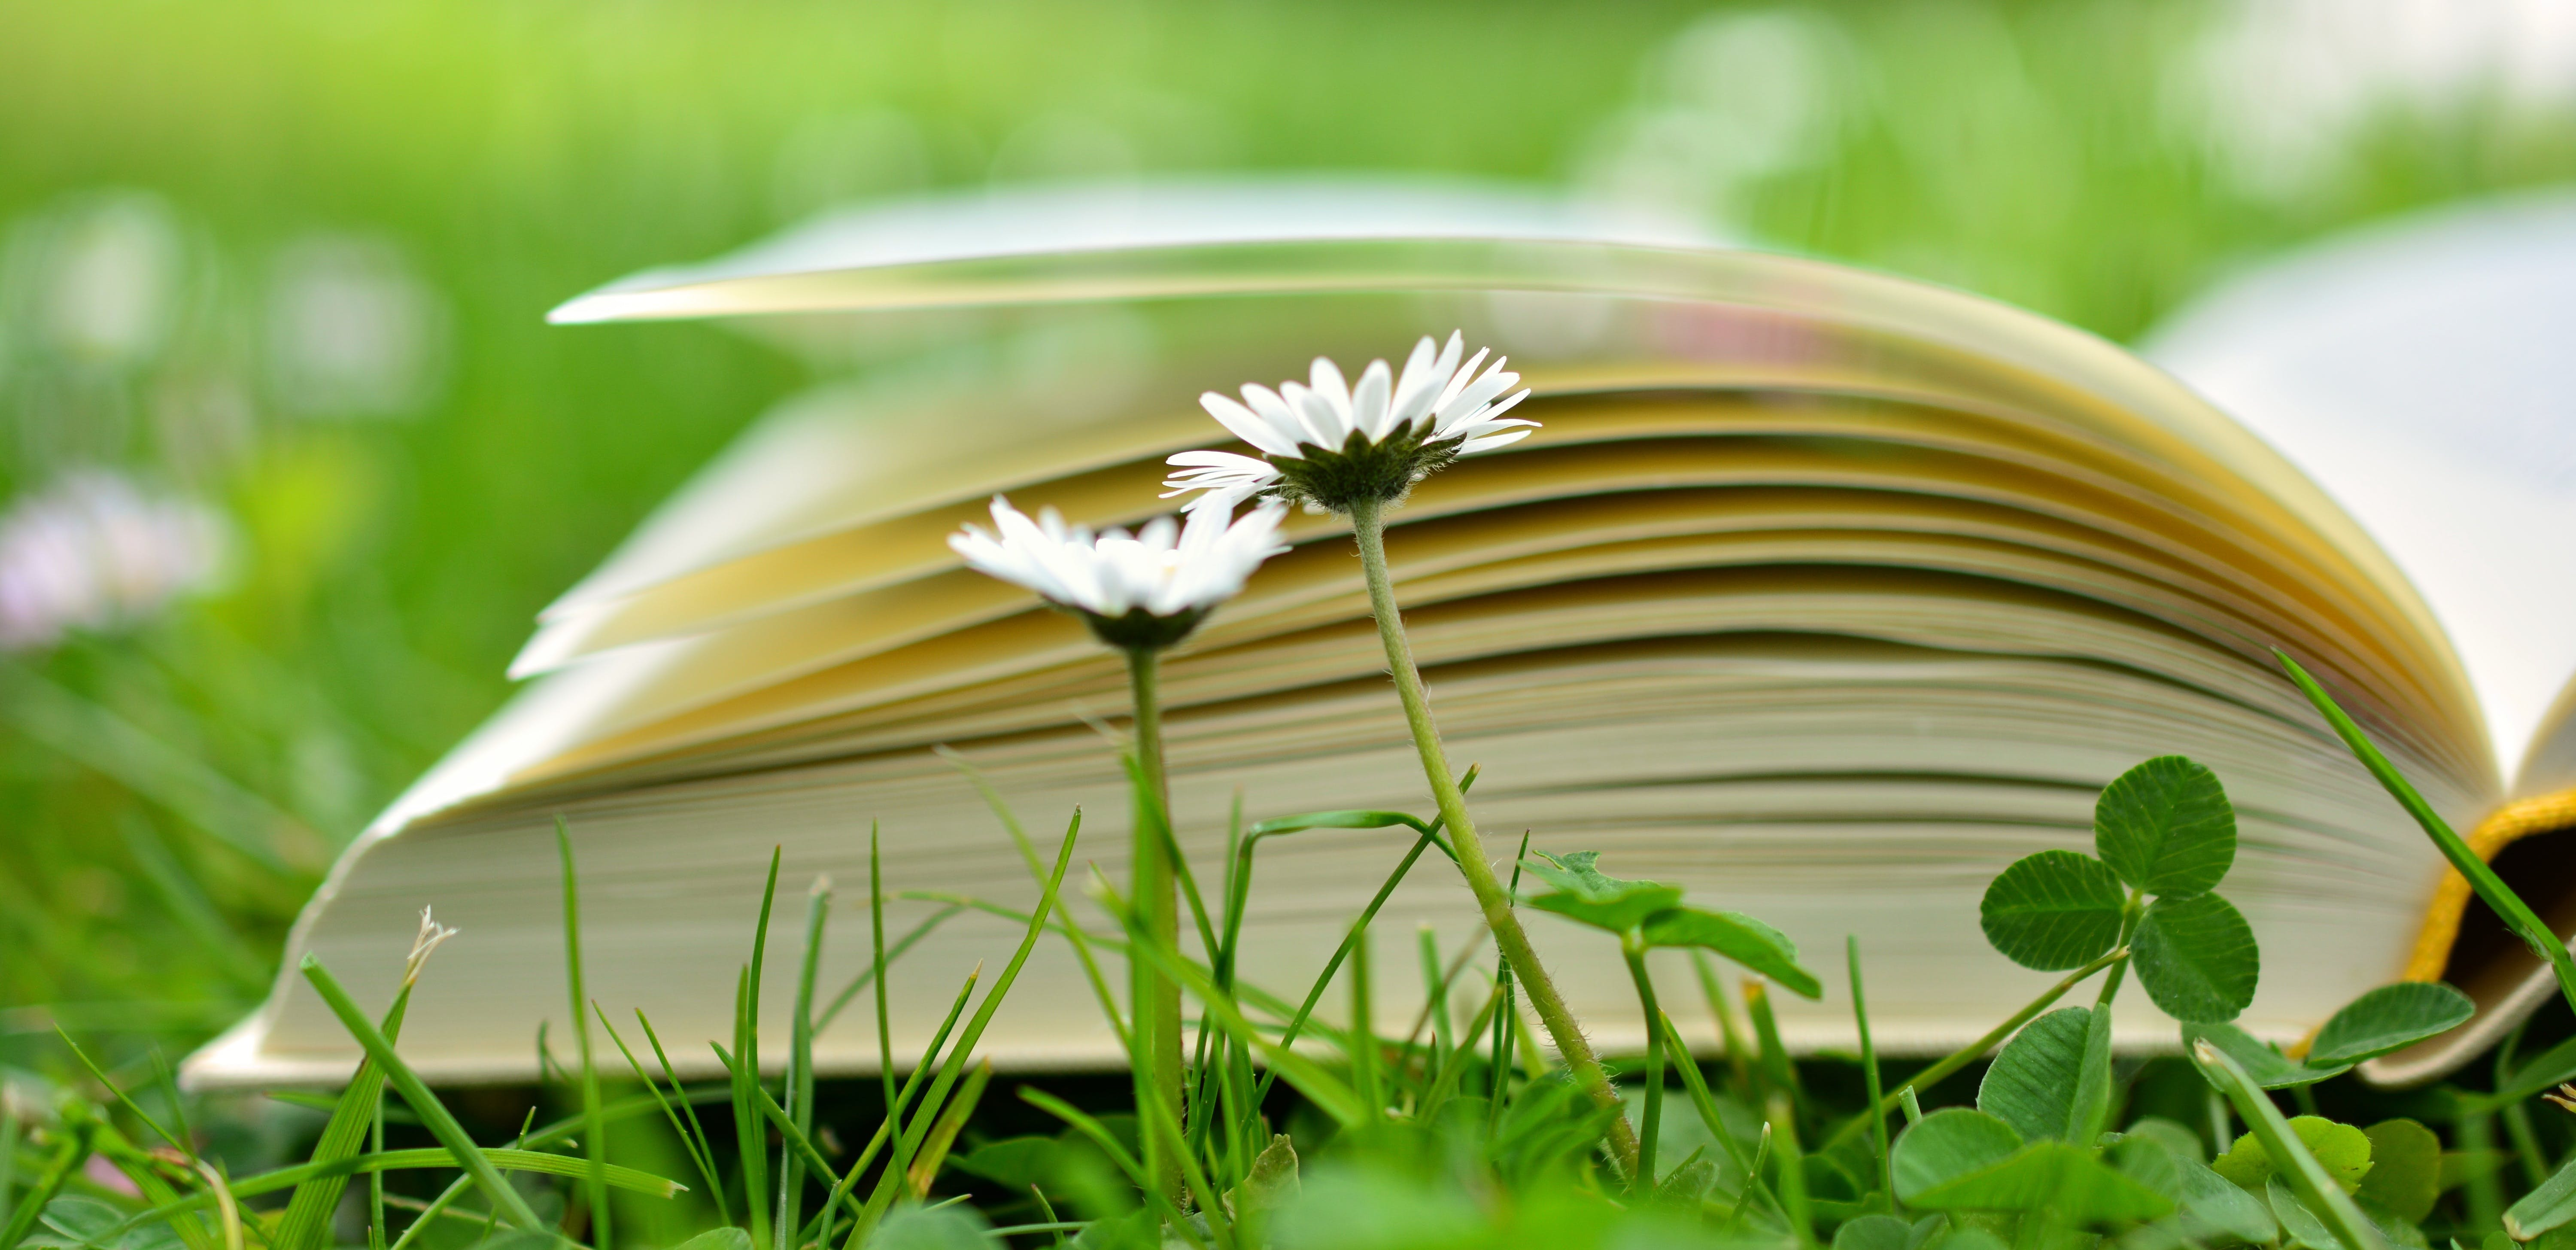 Free stock photo of books, meadow, relax, book